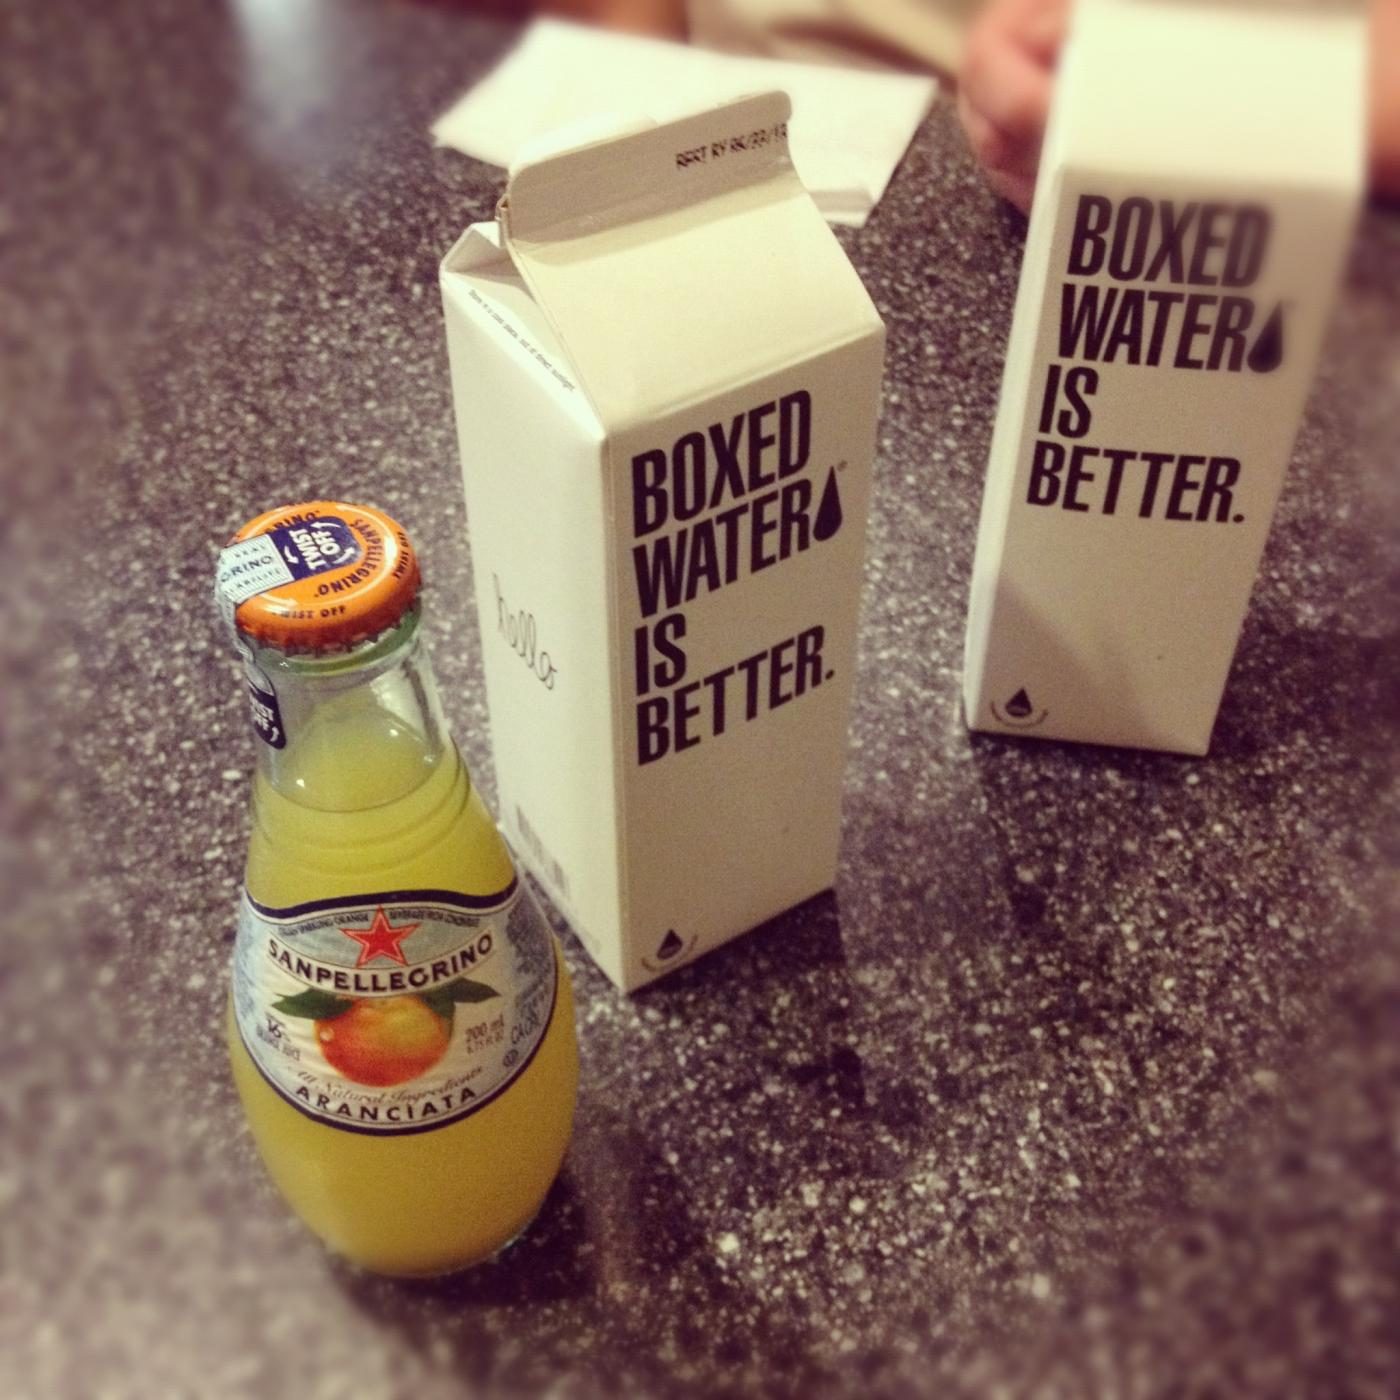 Boxed water, iced coffee